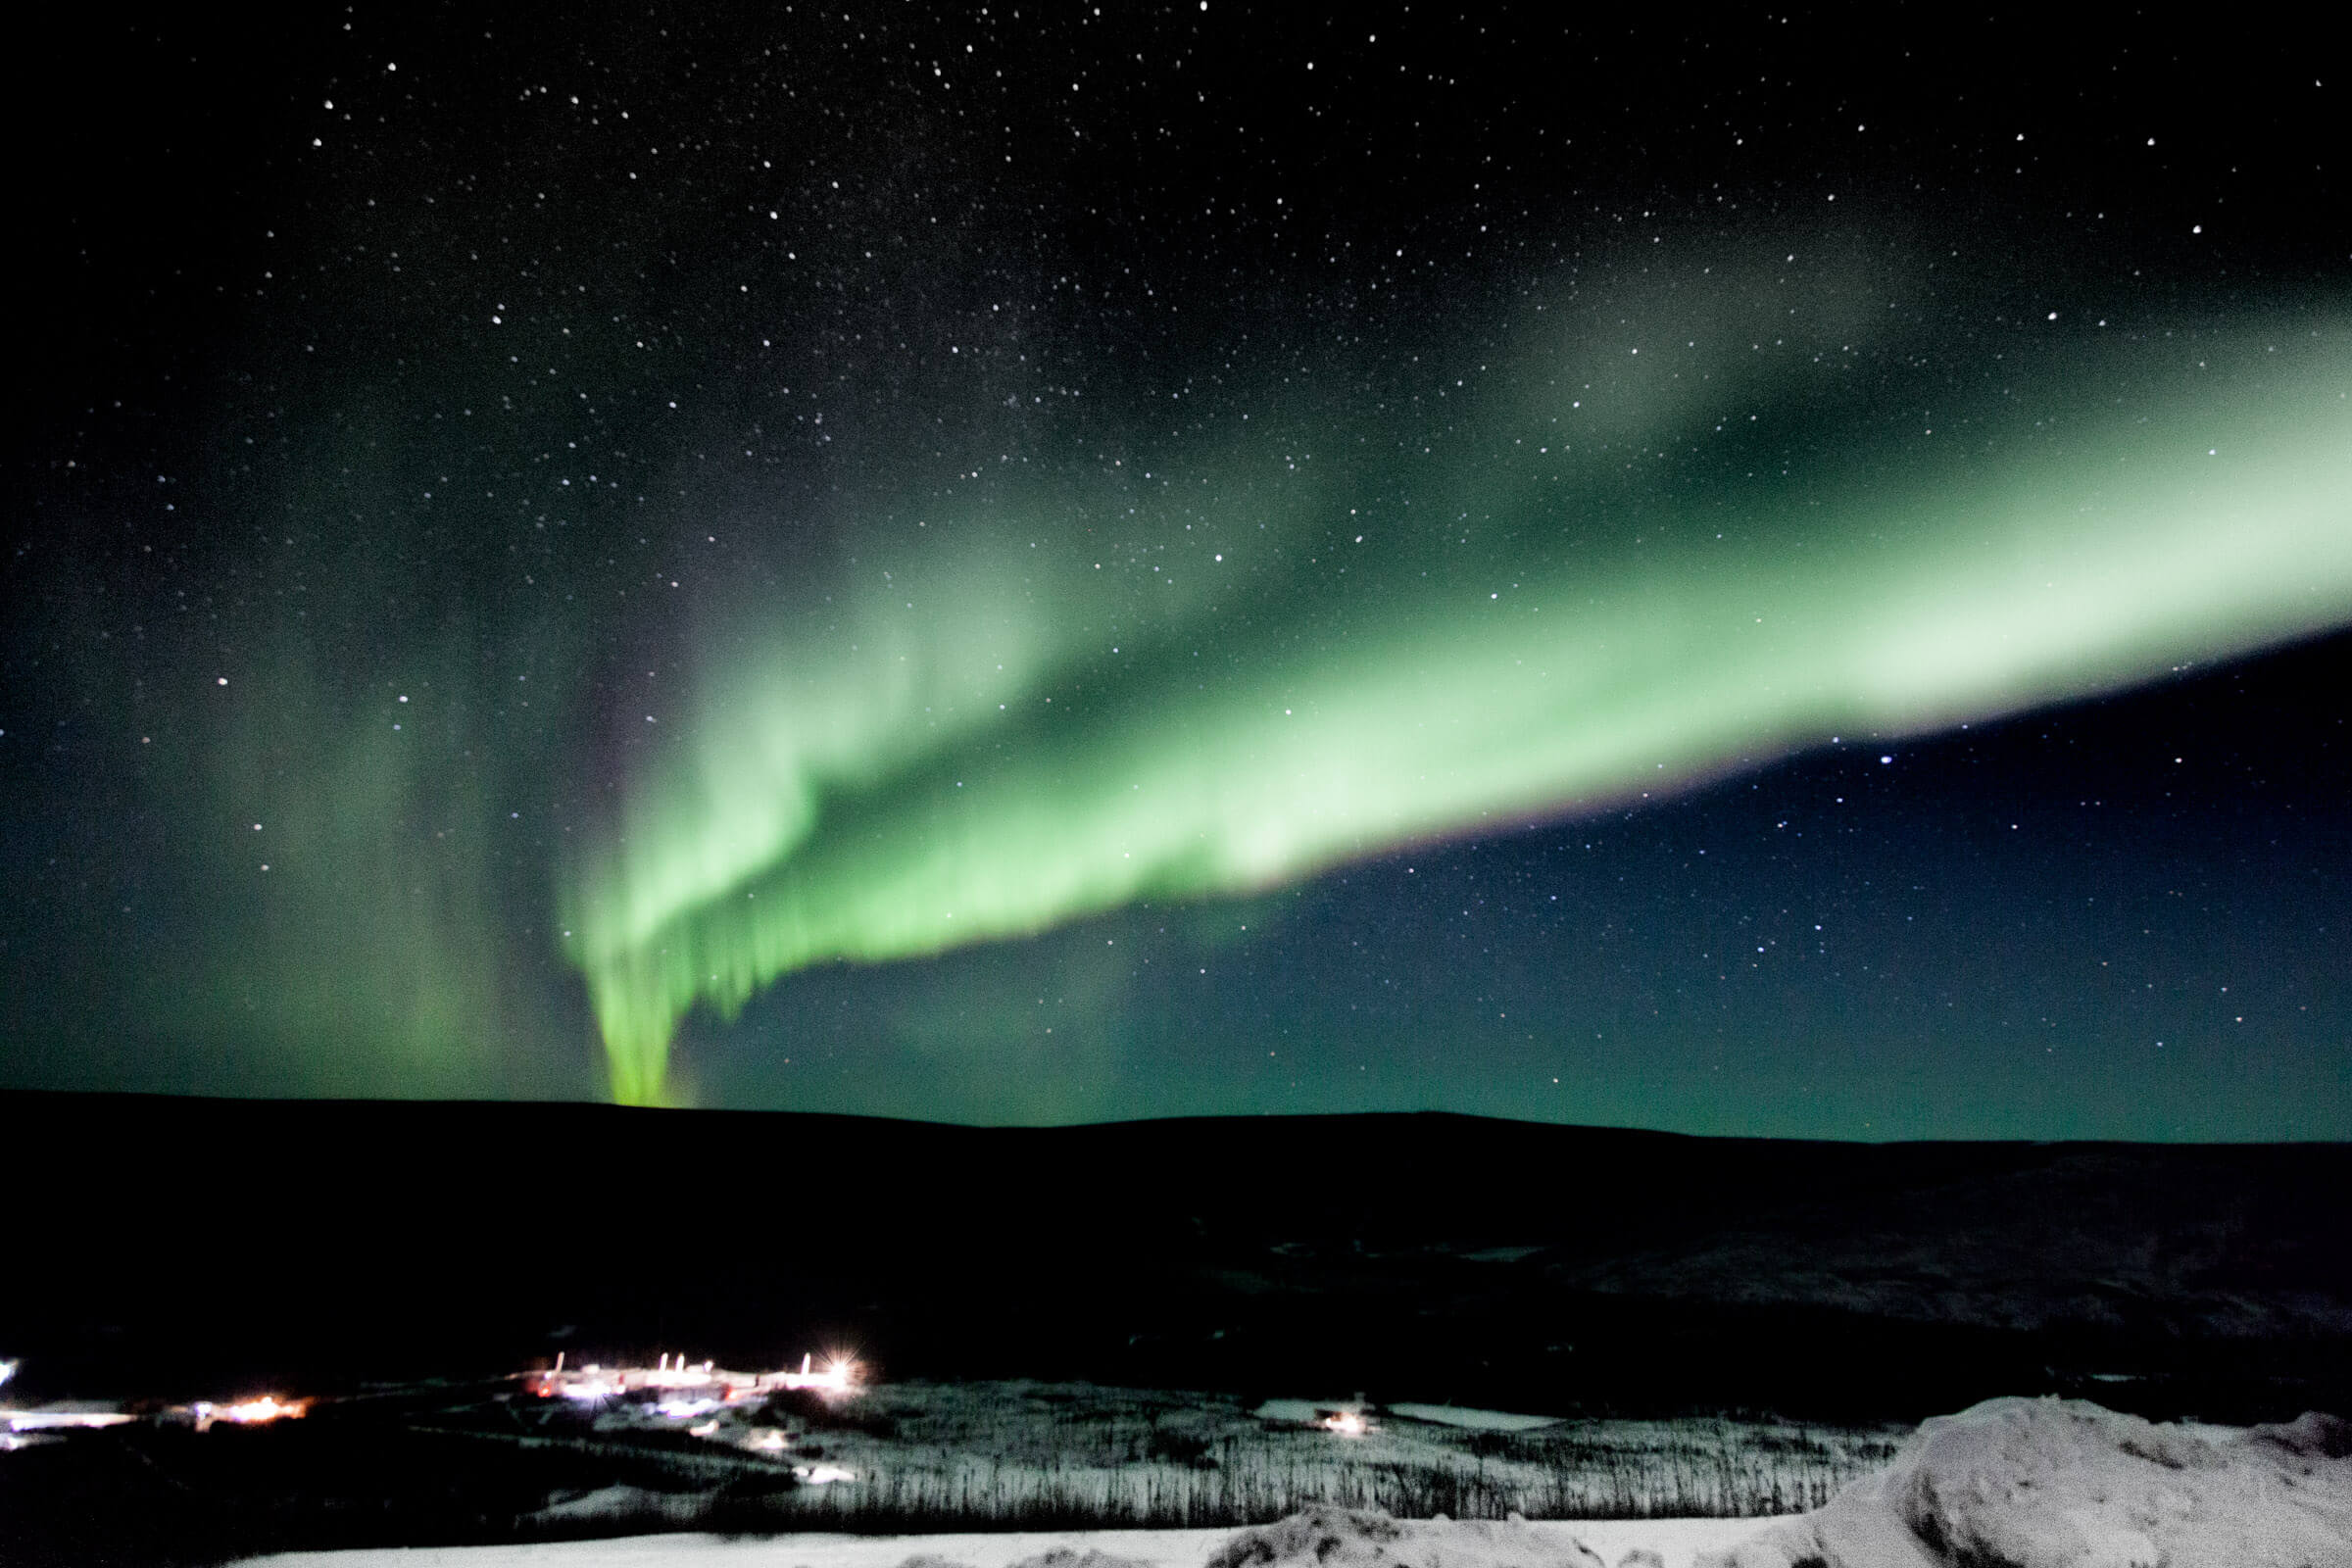 A photograph of green aurora against a dark night sky